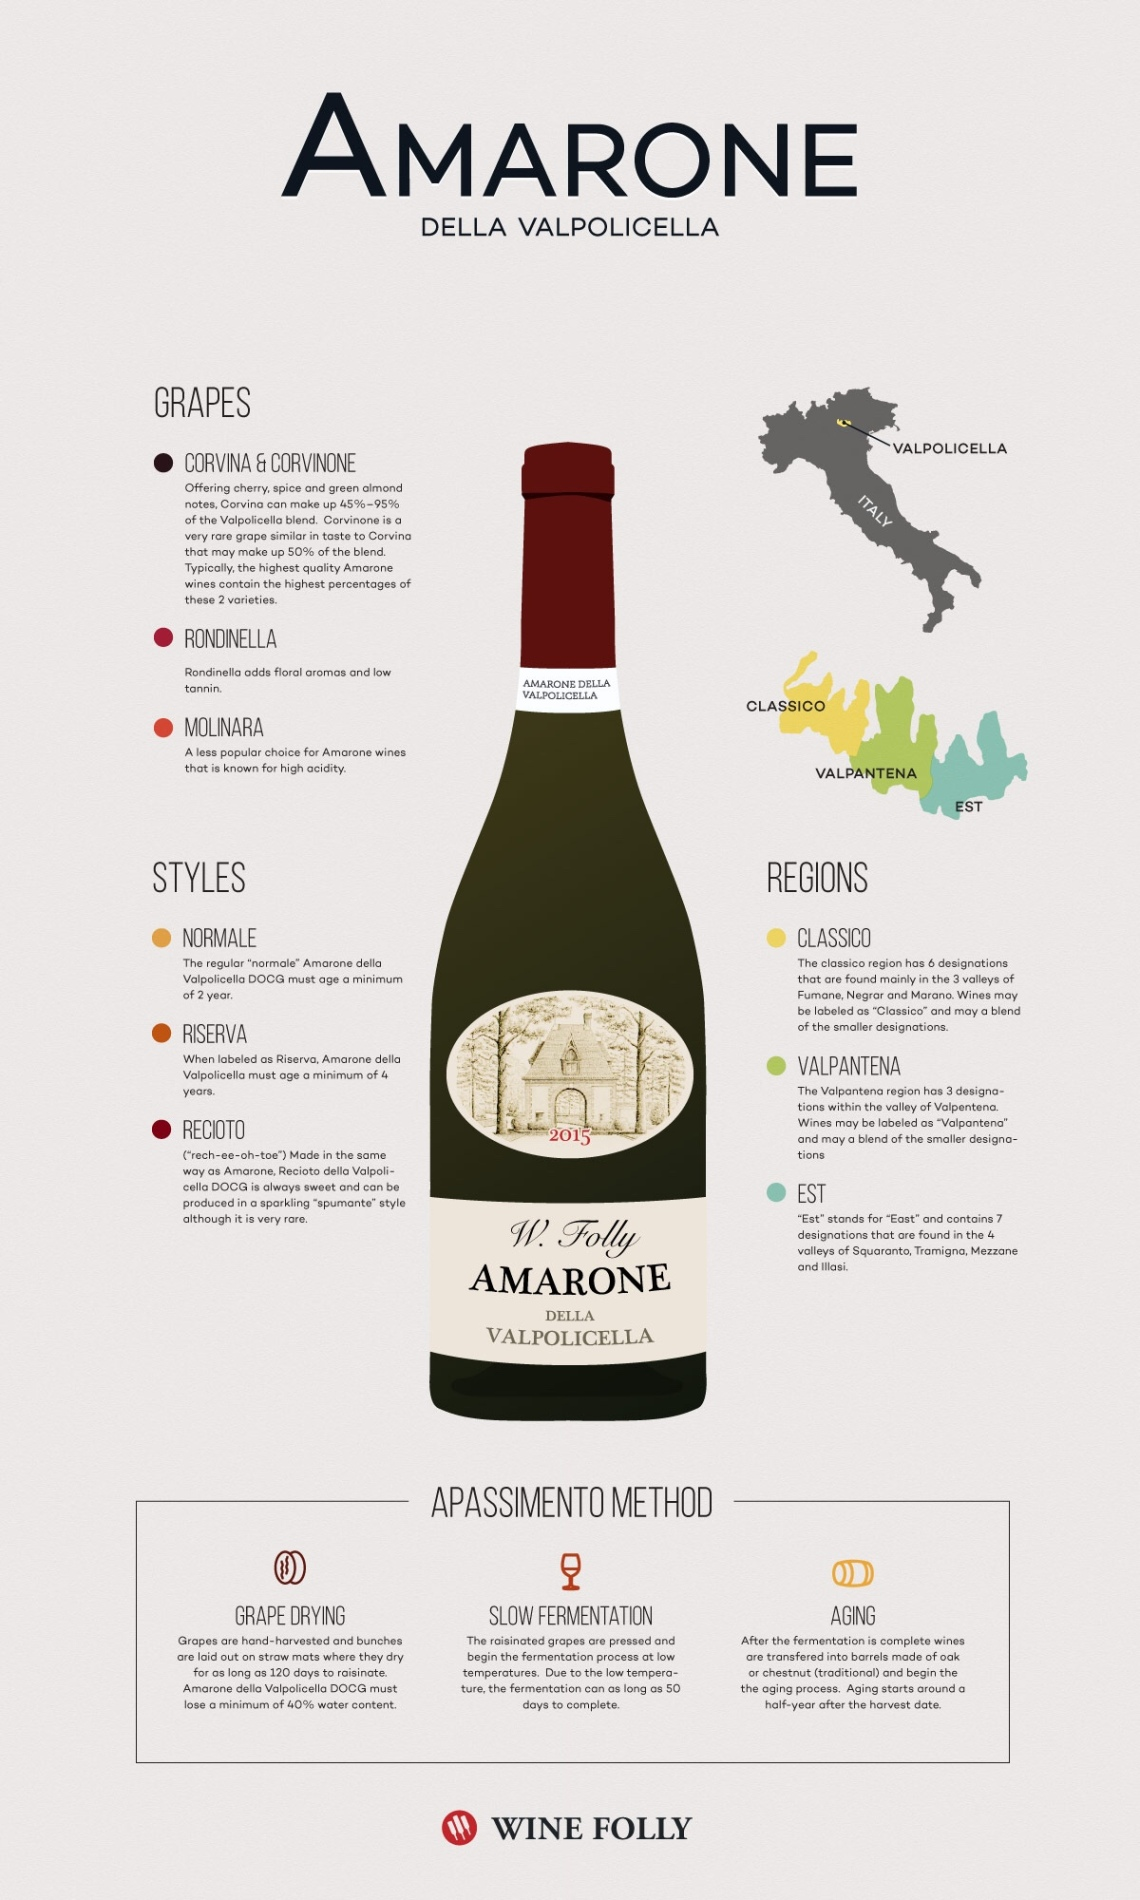 Info graphic on Amarone wines by Wine Folly